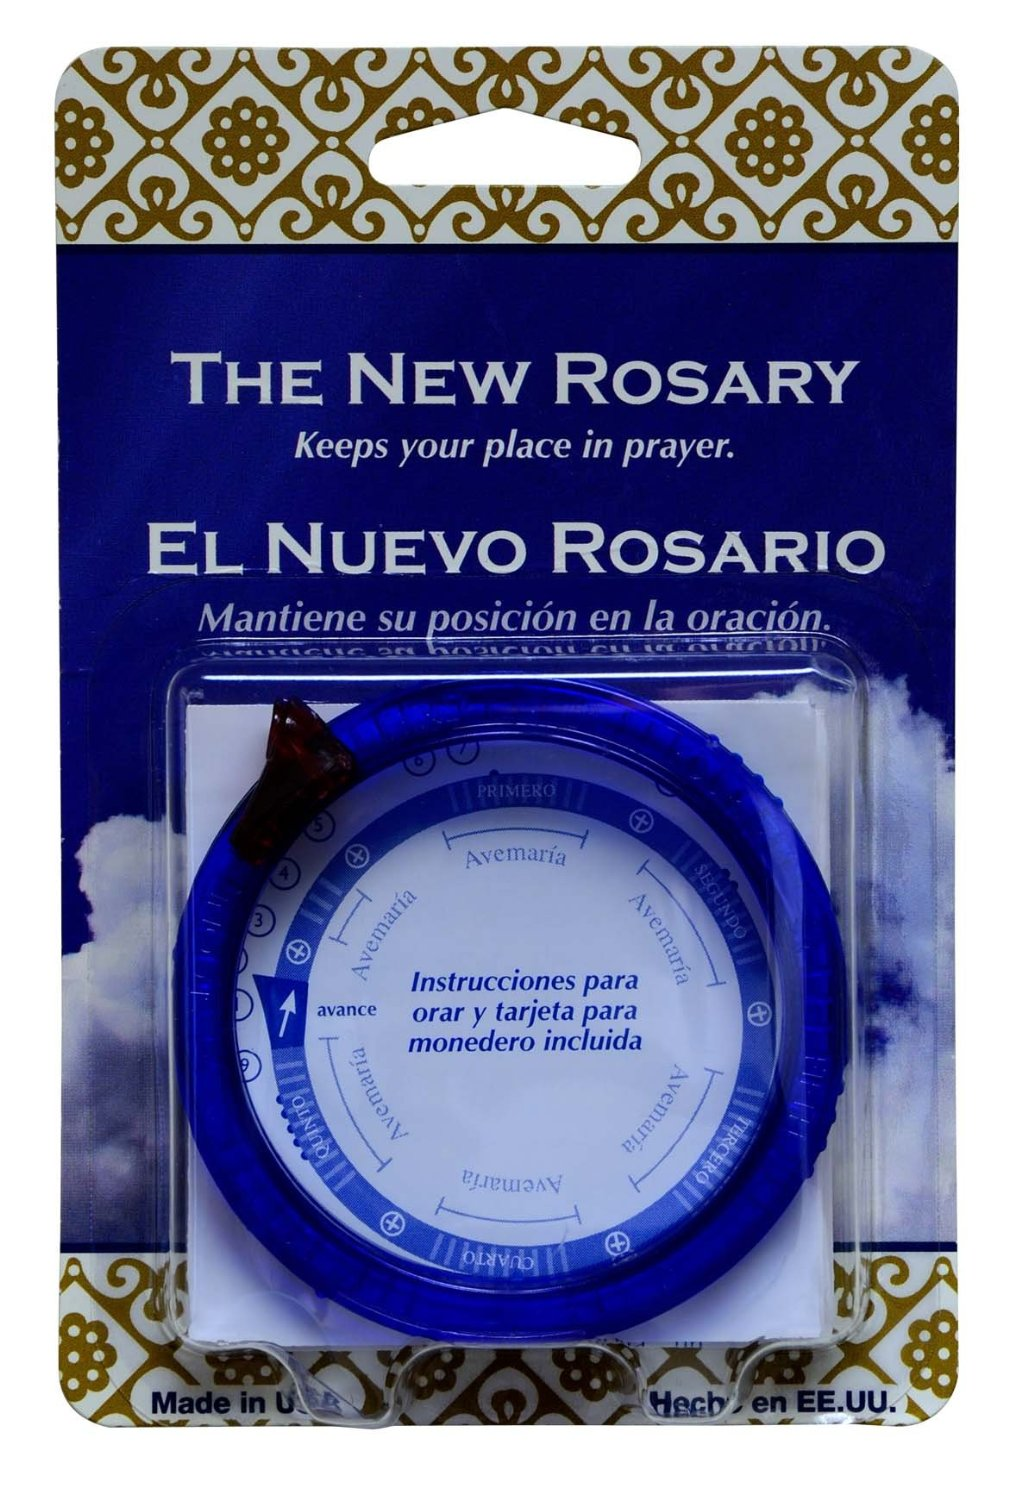 The New Rosary